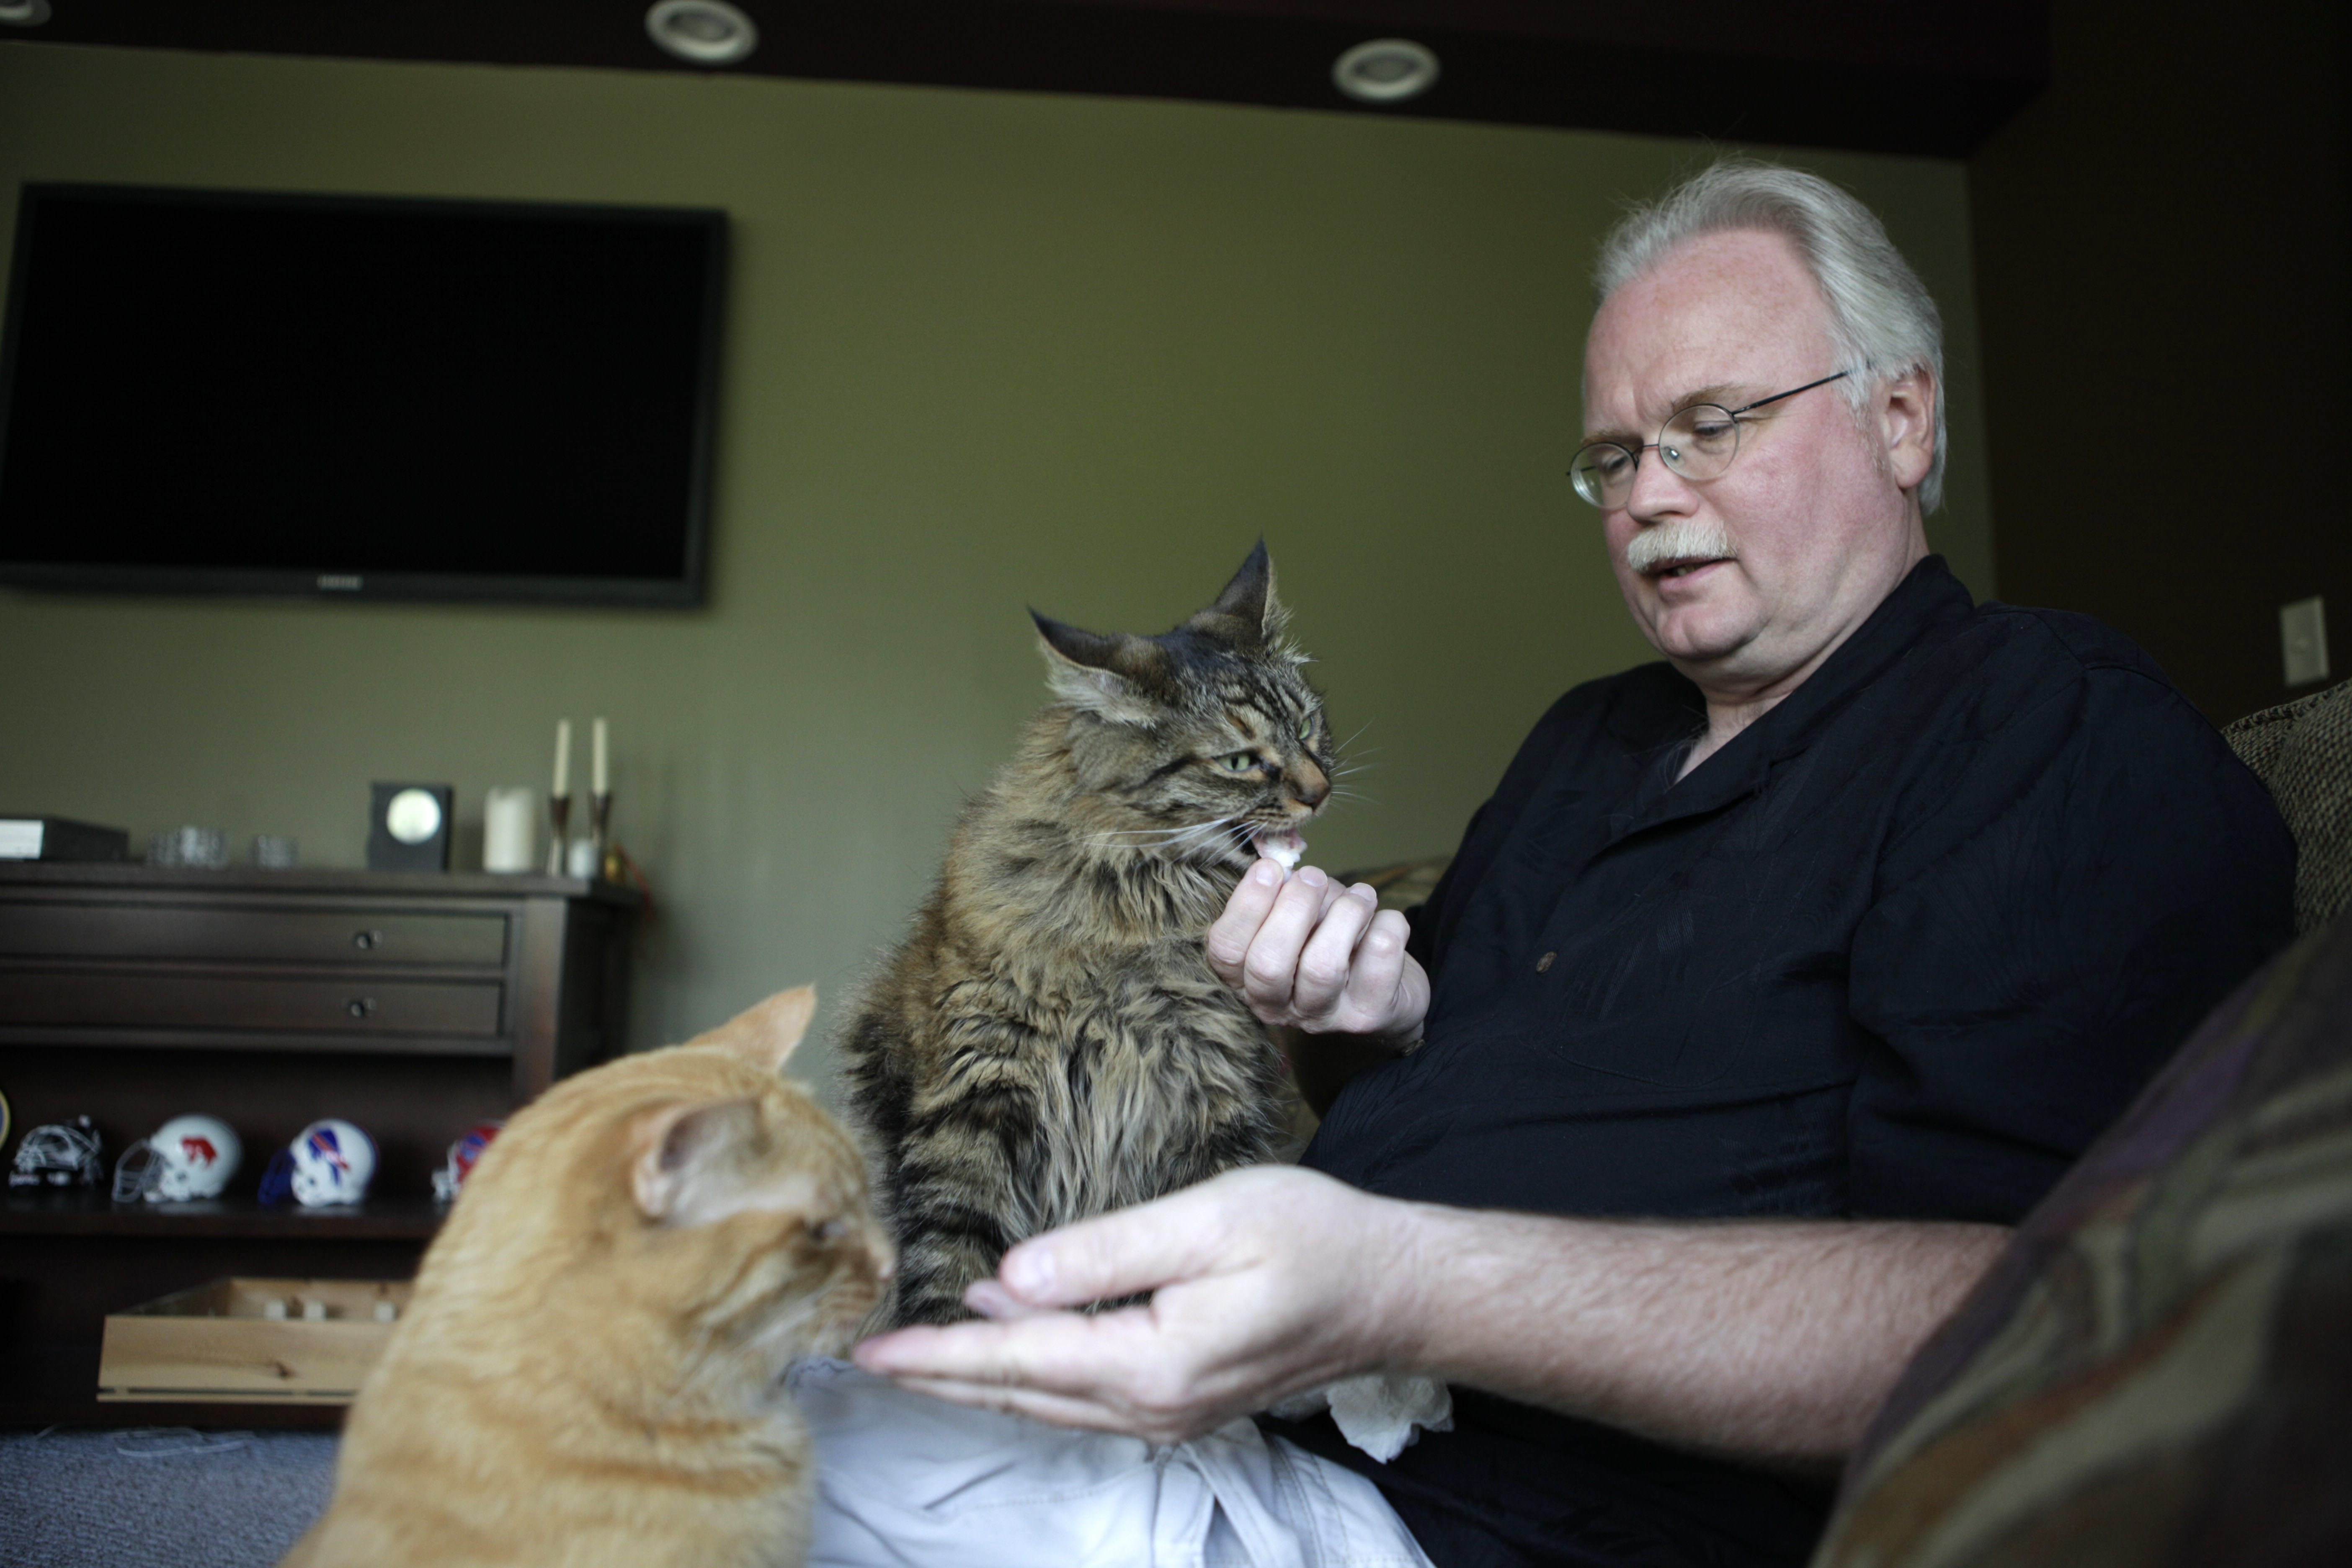 Tom Campbell has been trying to find a home for his two cats after his fiancee moved out due to her severe allergies.